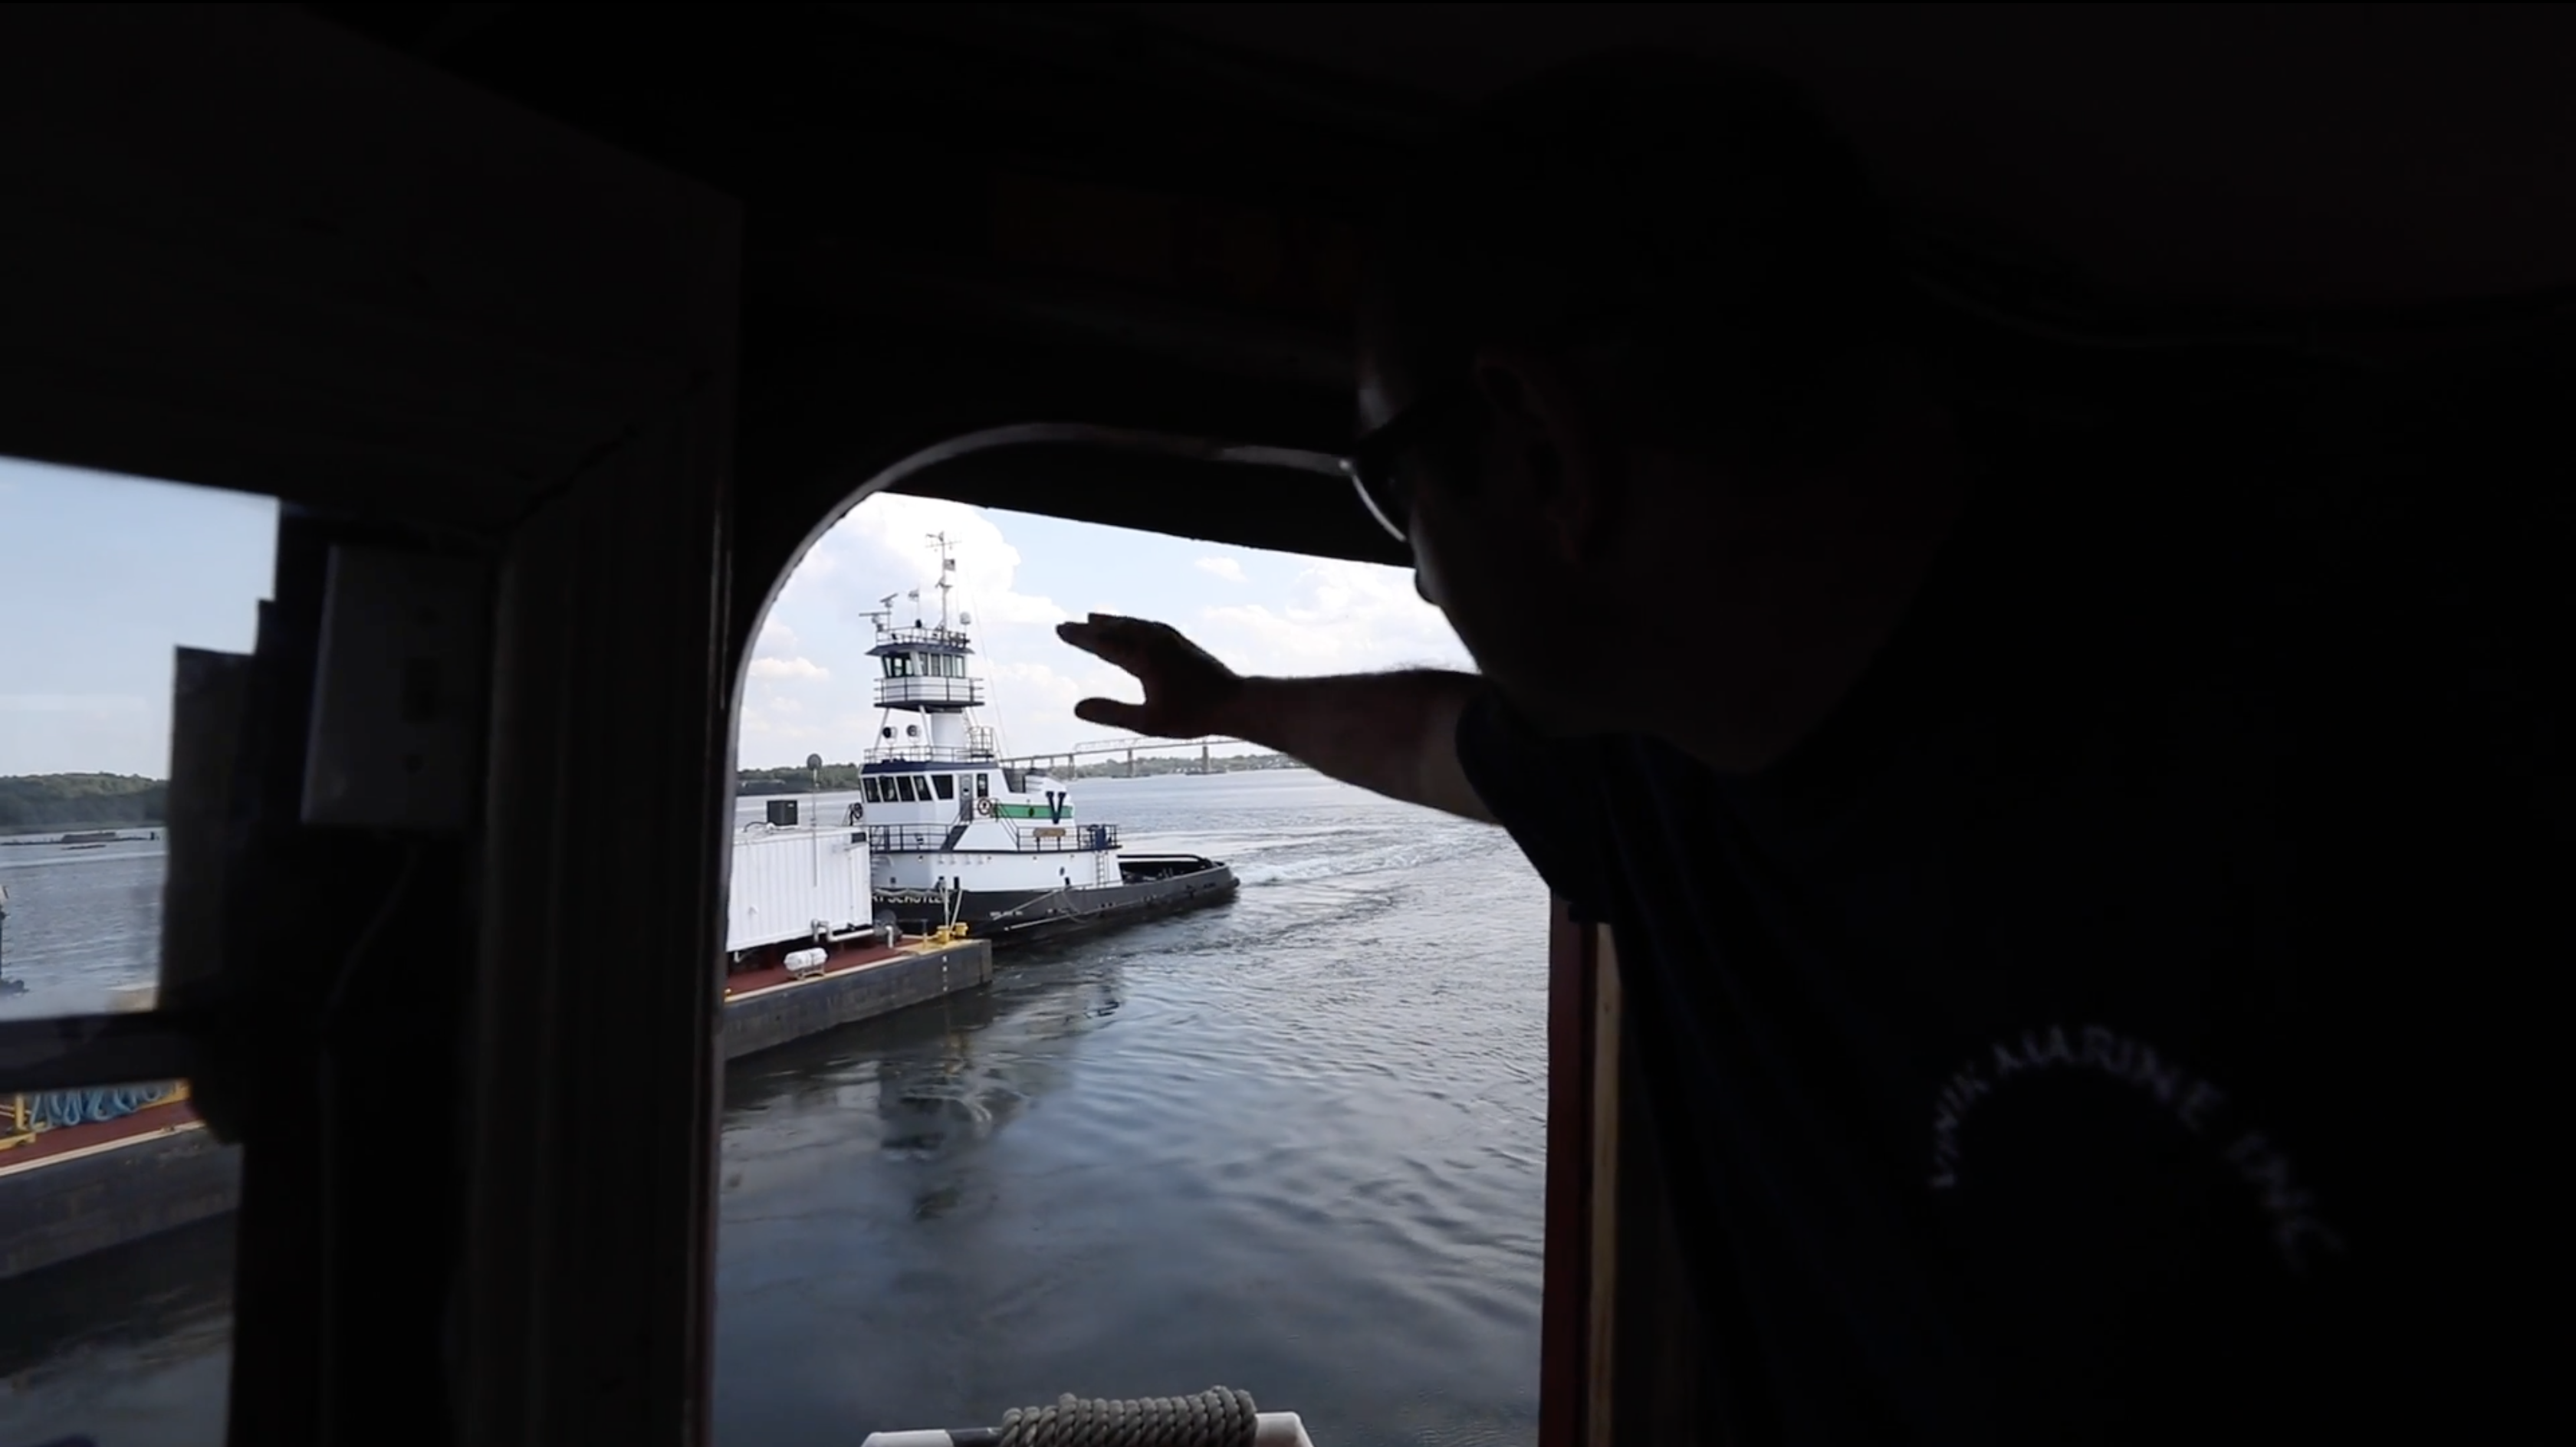 Mike Vinik is a tugboat pilot and the owner and operator of Vinik Marine.